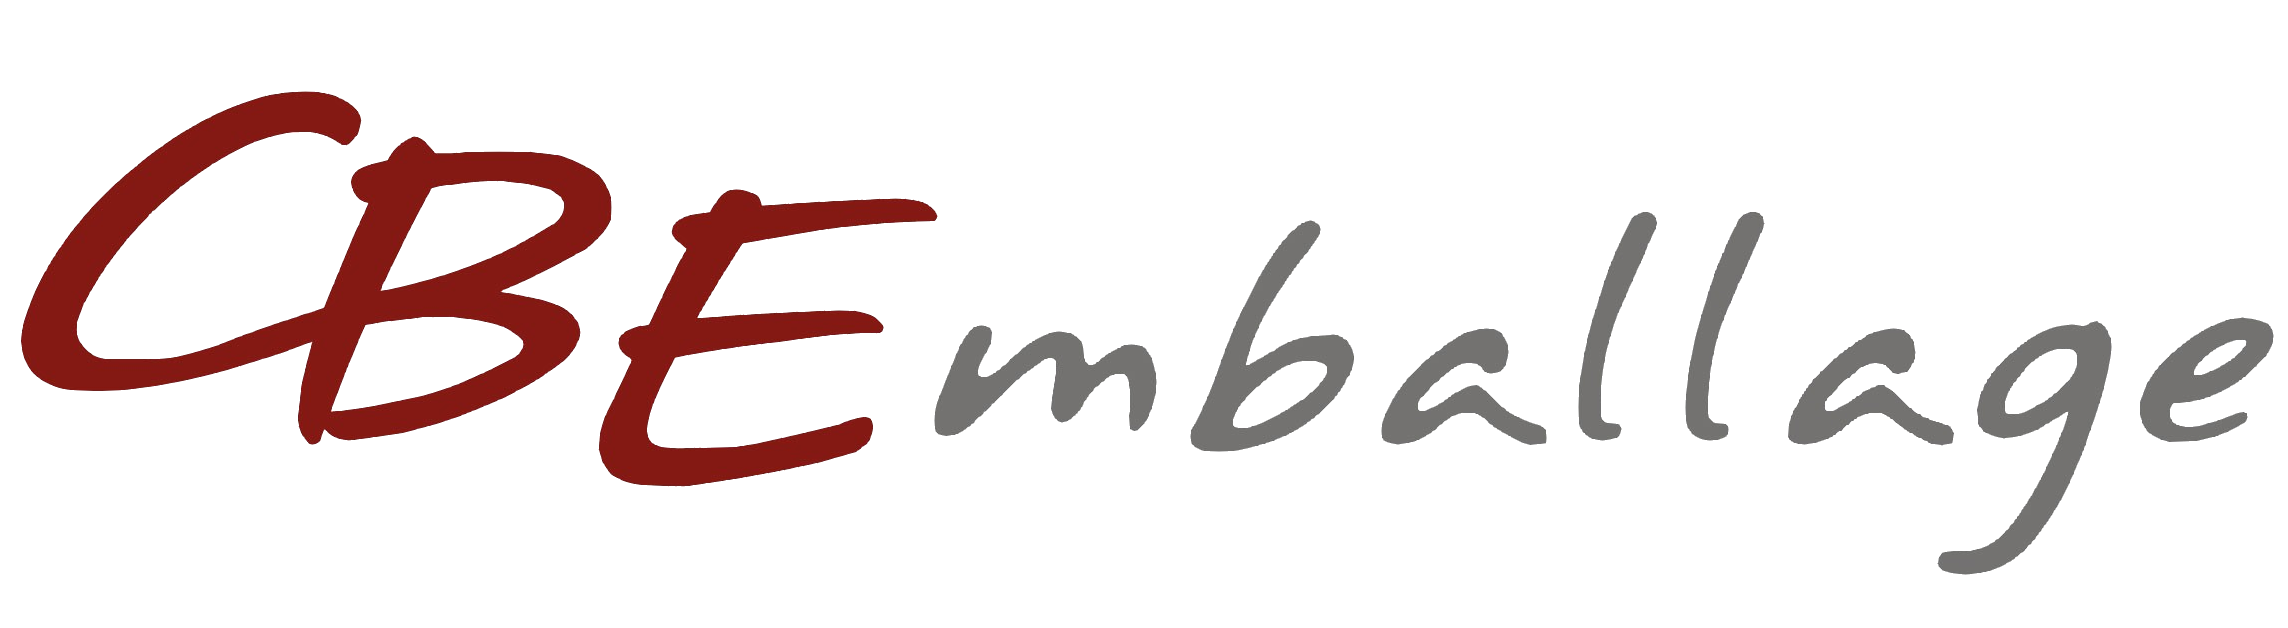 CB Emballage Logo simple